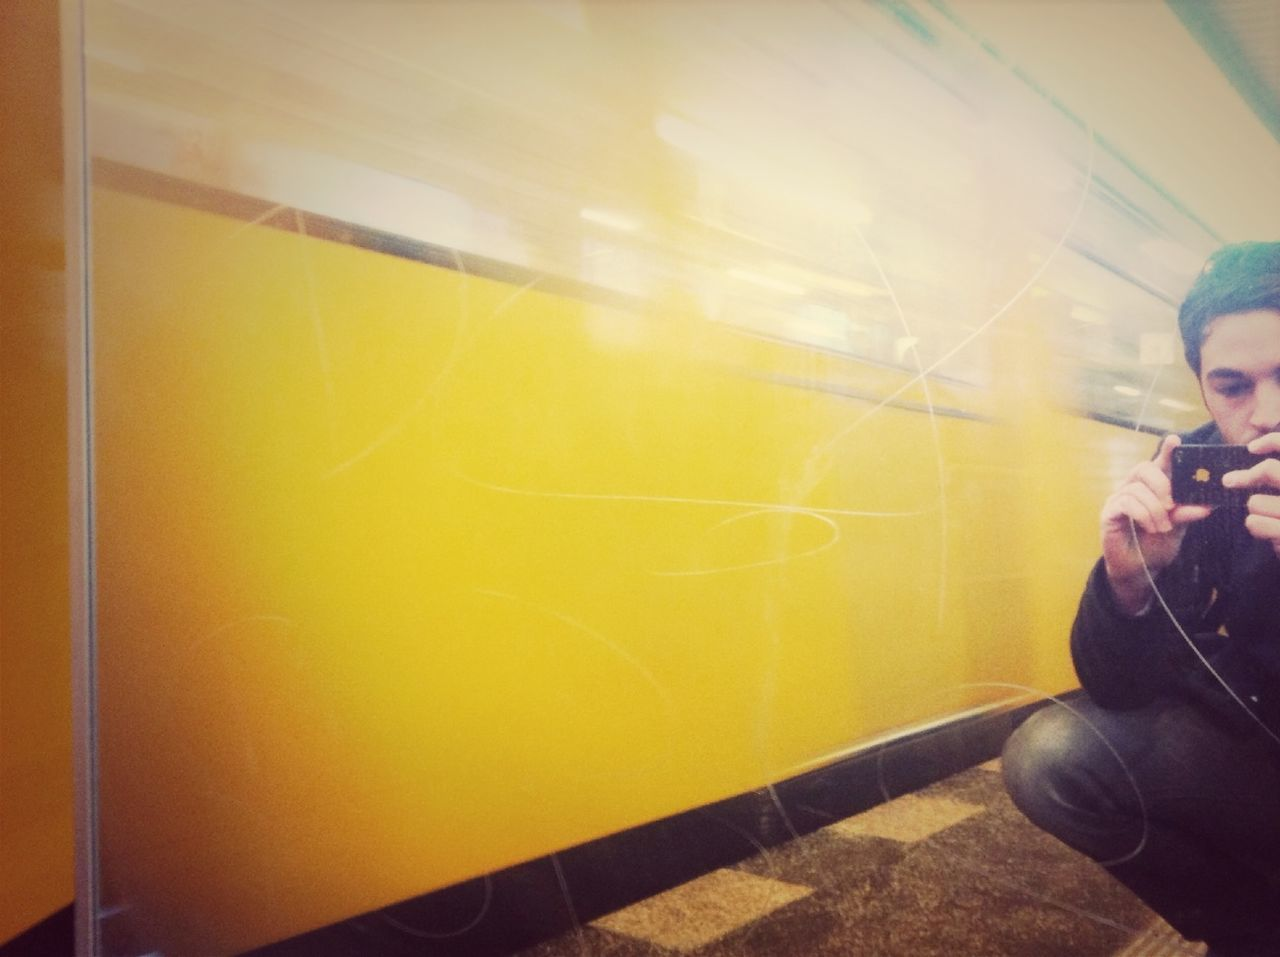 Cropped man photographing besides yellow wall